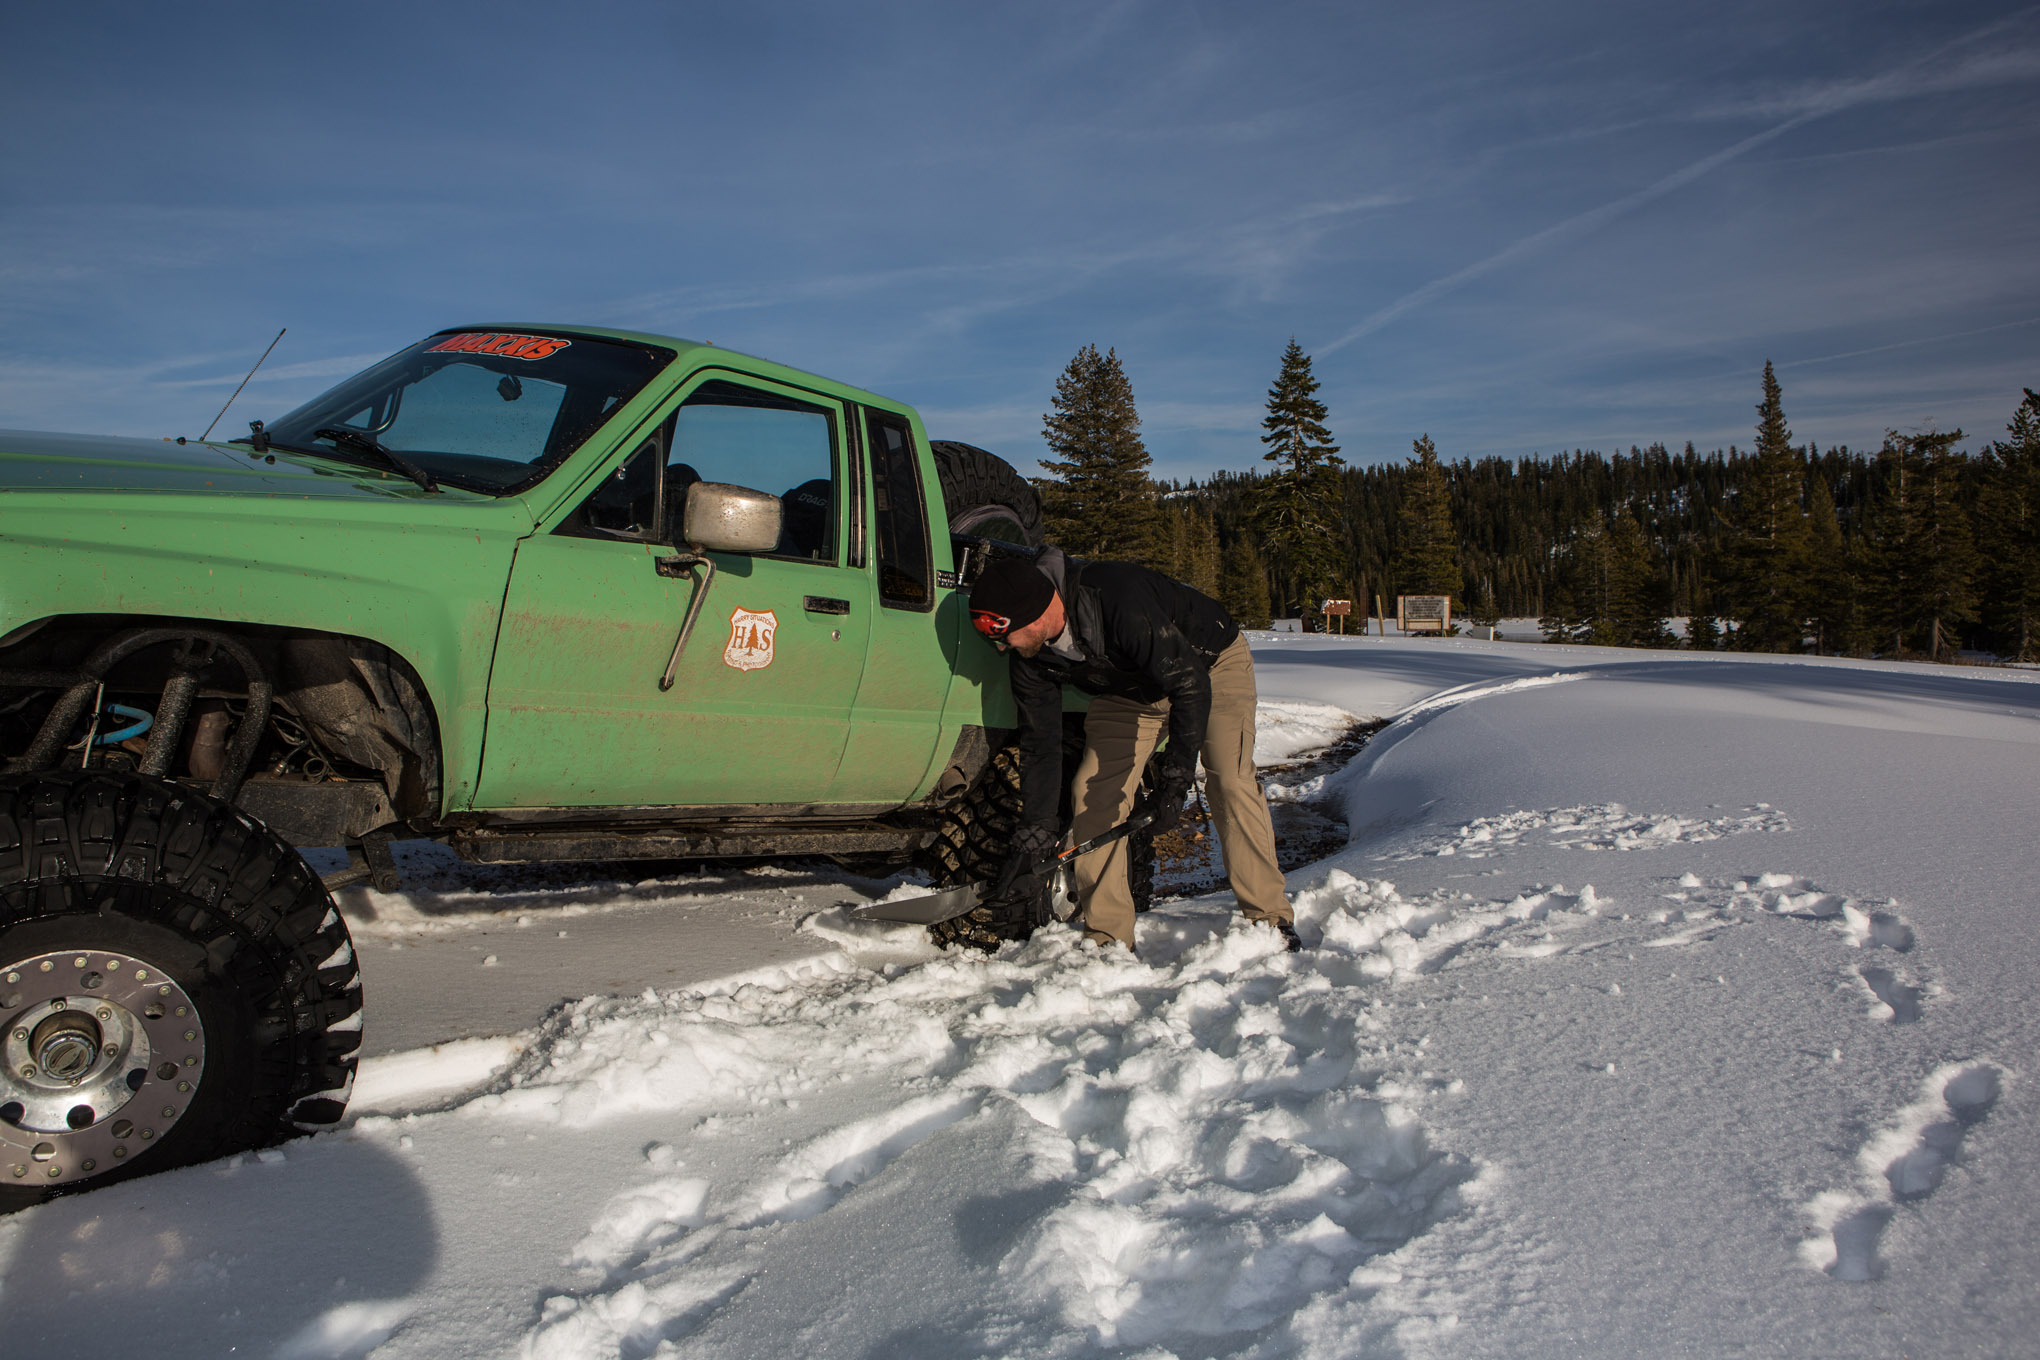 A shovel is a great way to help get your vehicle unstuck in the snow. A full-blown snow shovel is best, but this collapsible avalanche shovel was inexpensive, takes up little space, and gets the job done.